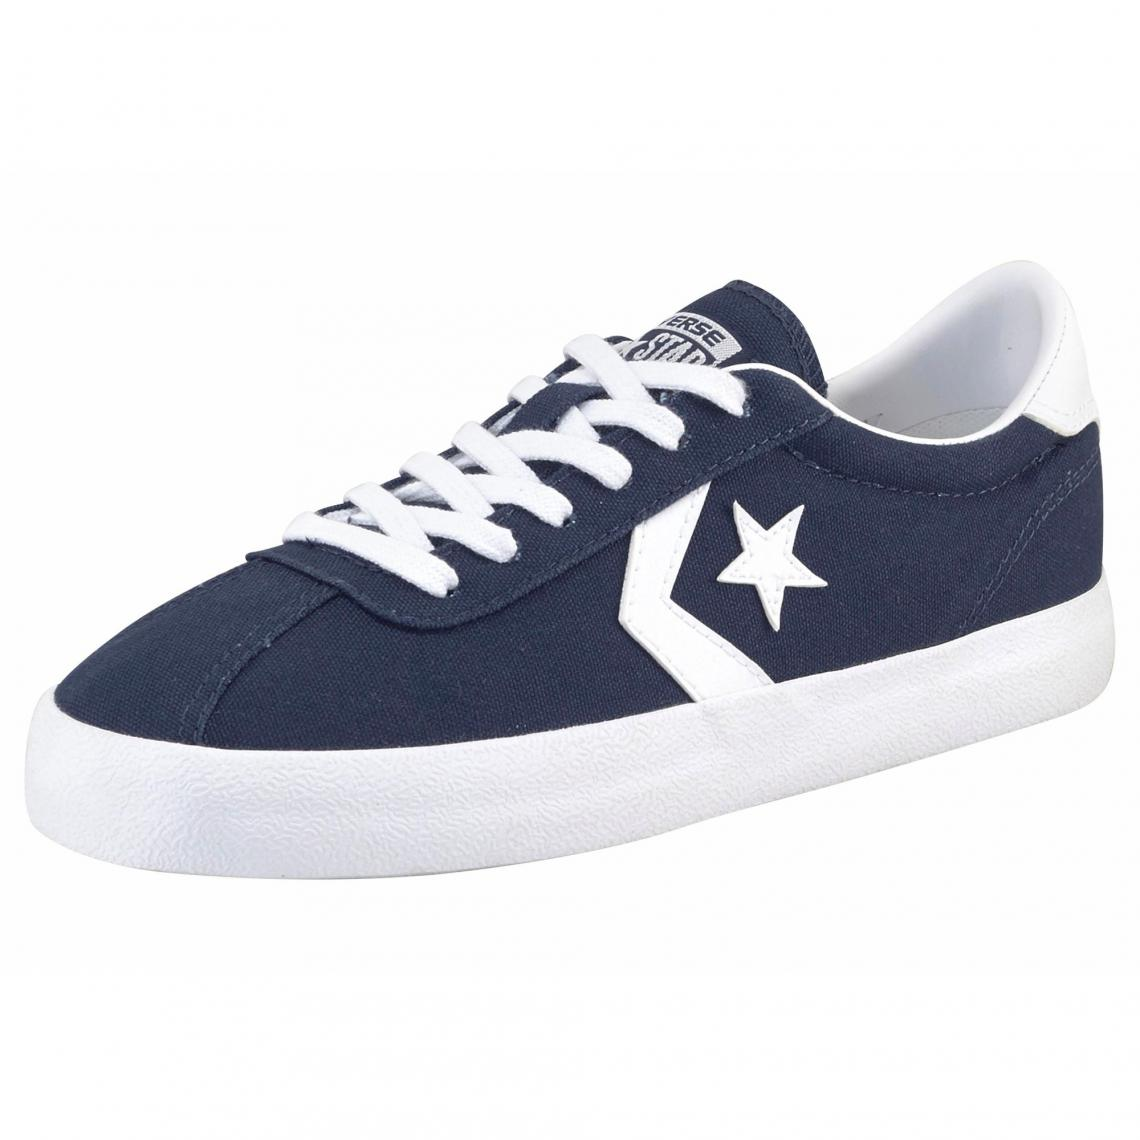 Basses Star Converse Canvas Breakpoint Ox Taylor All Sneakers Chuck wRTqtSR8